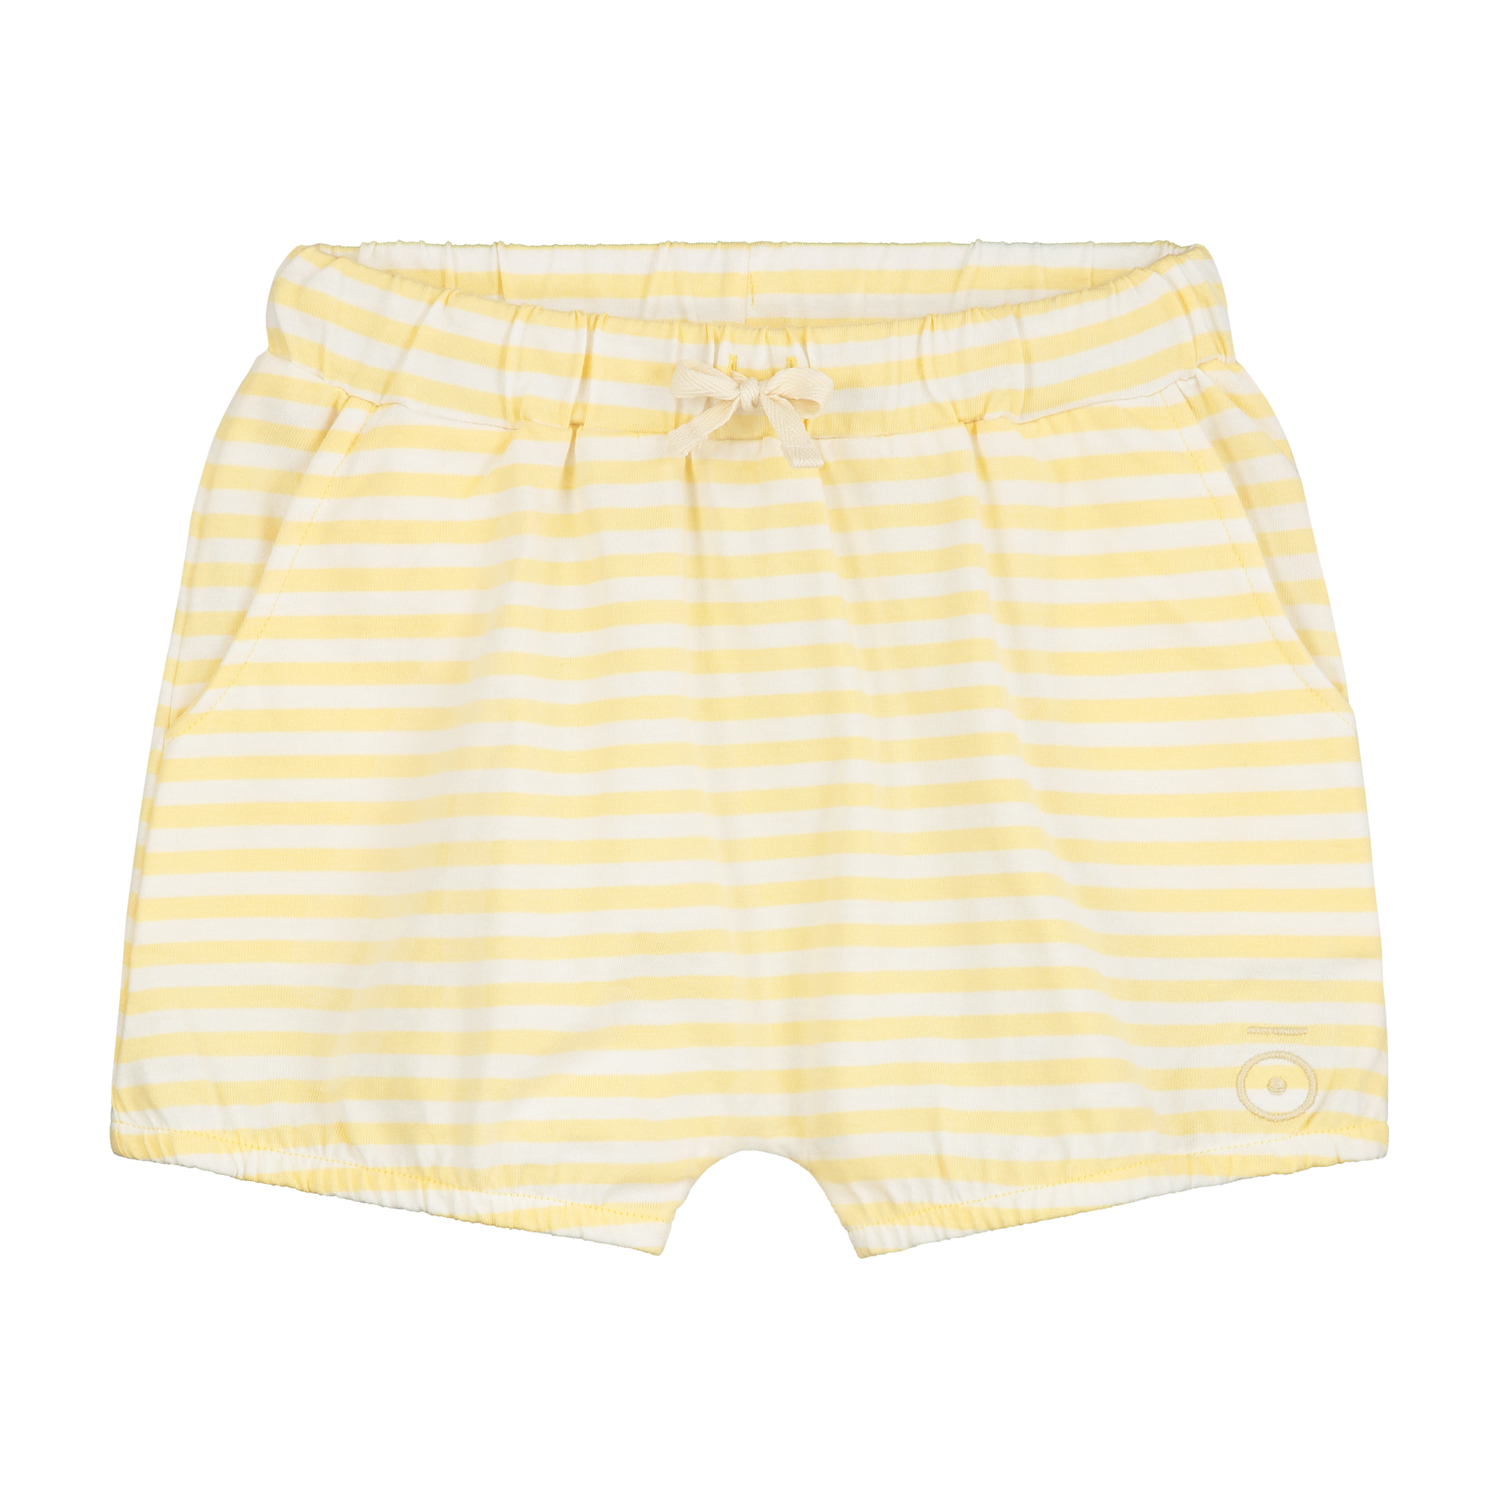 gray label puffy shorts mellow yellow off white